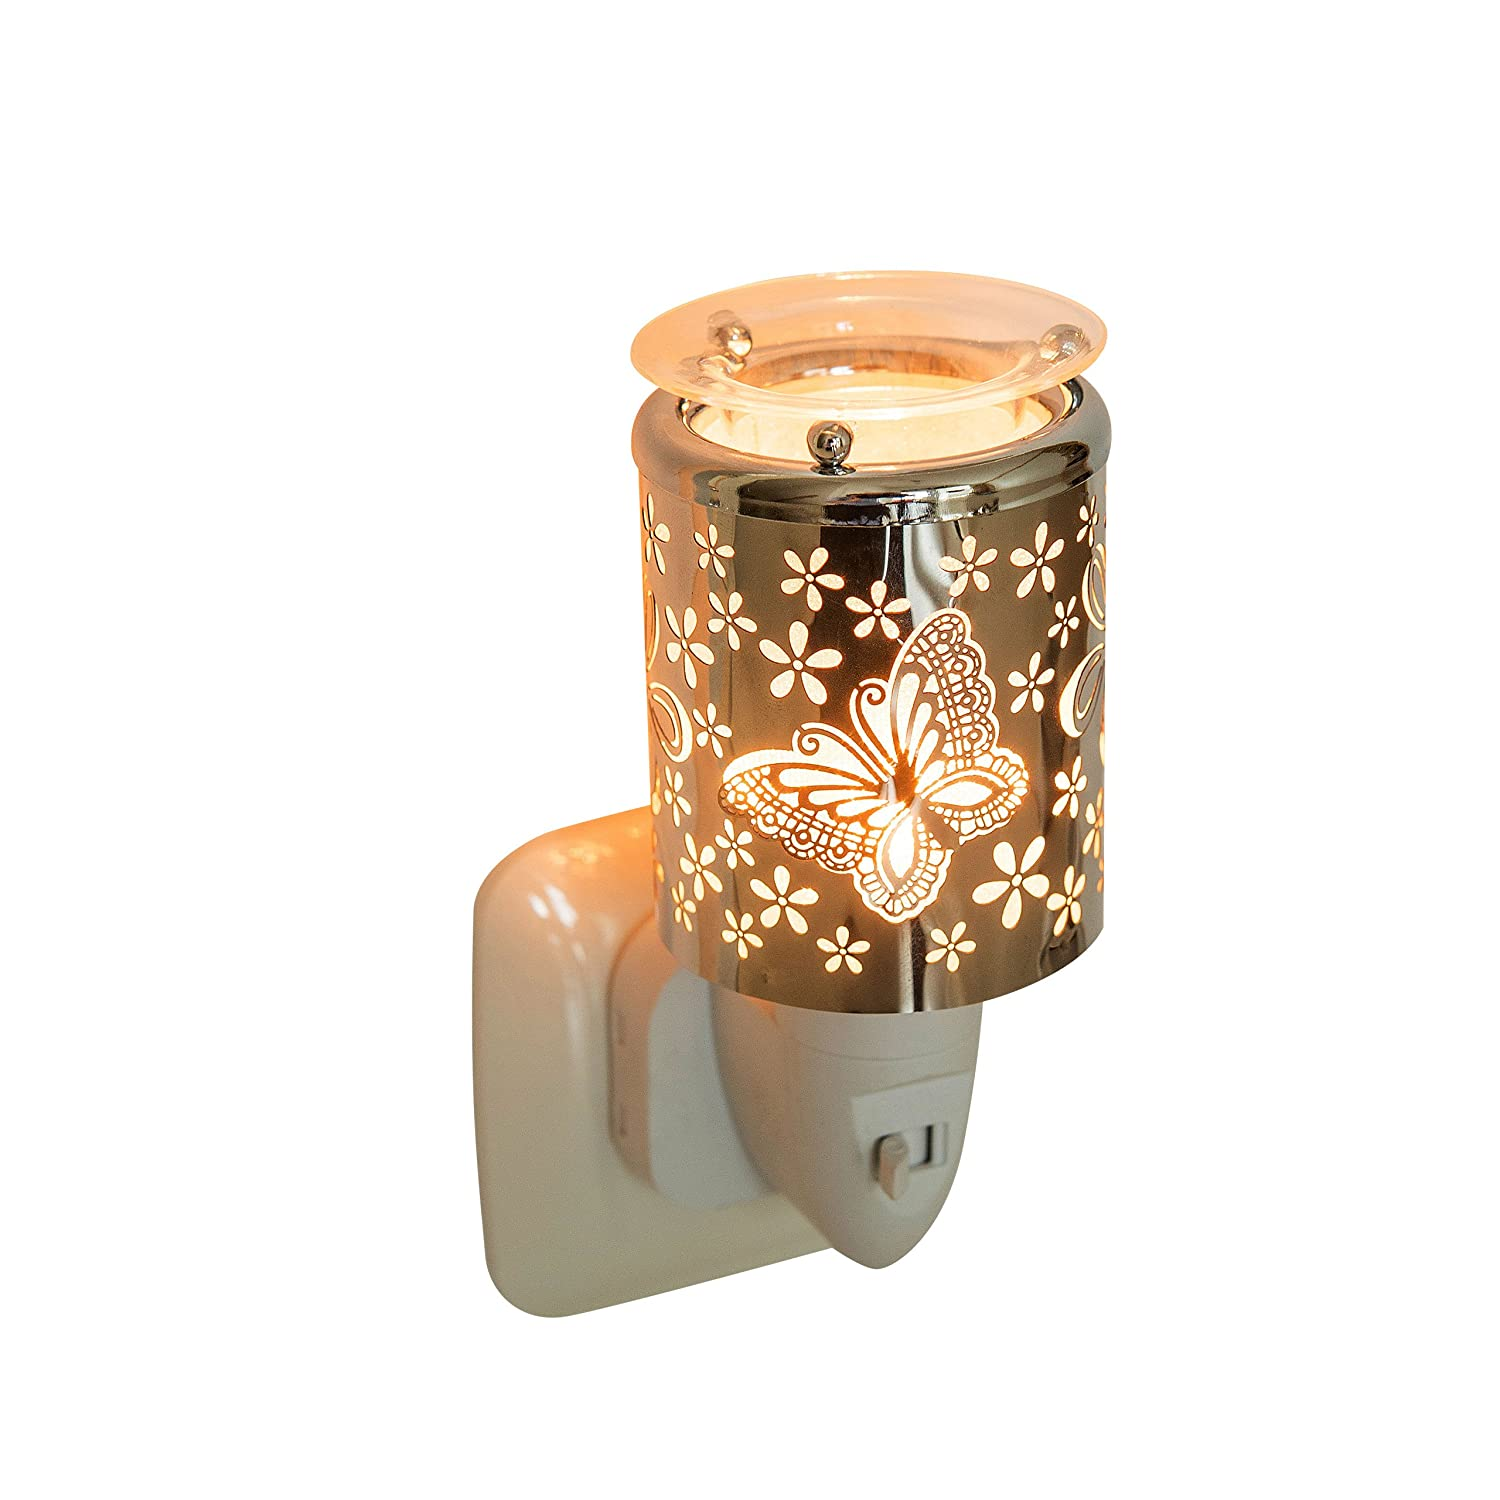 Pajoma Butterfly 44529 Electric Night Light Aroma Lamp Plastic/Metal, Height 10.5 cm